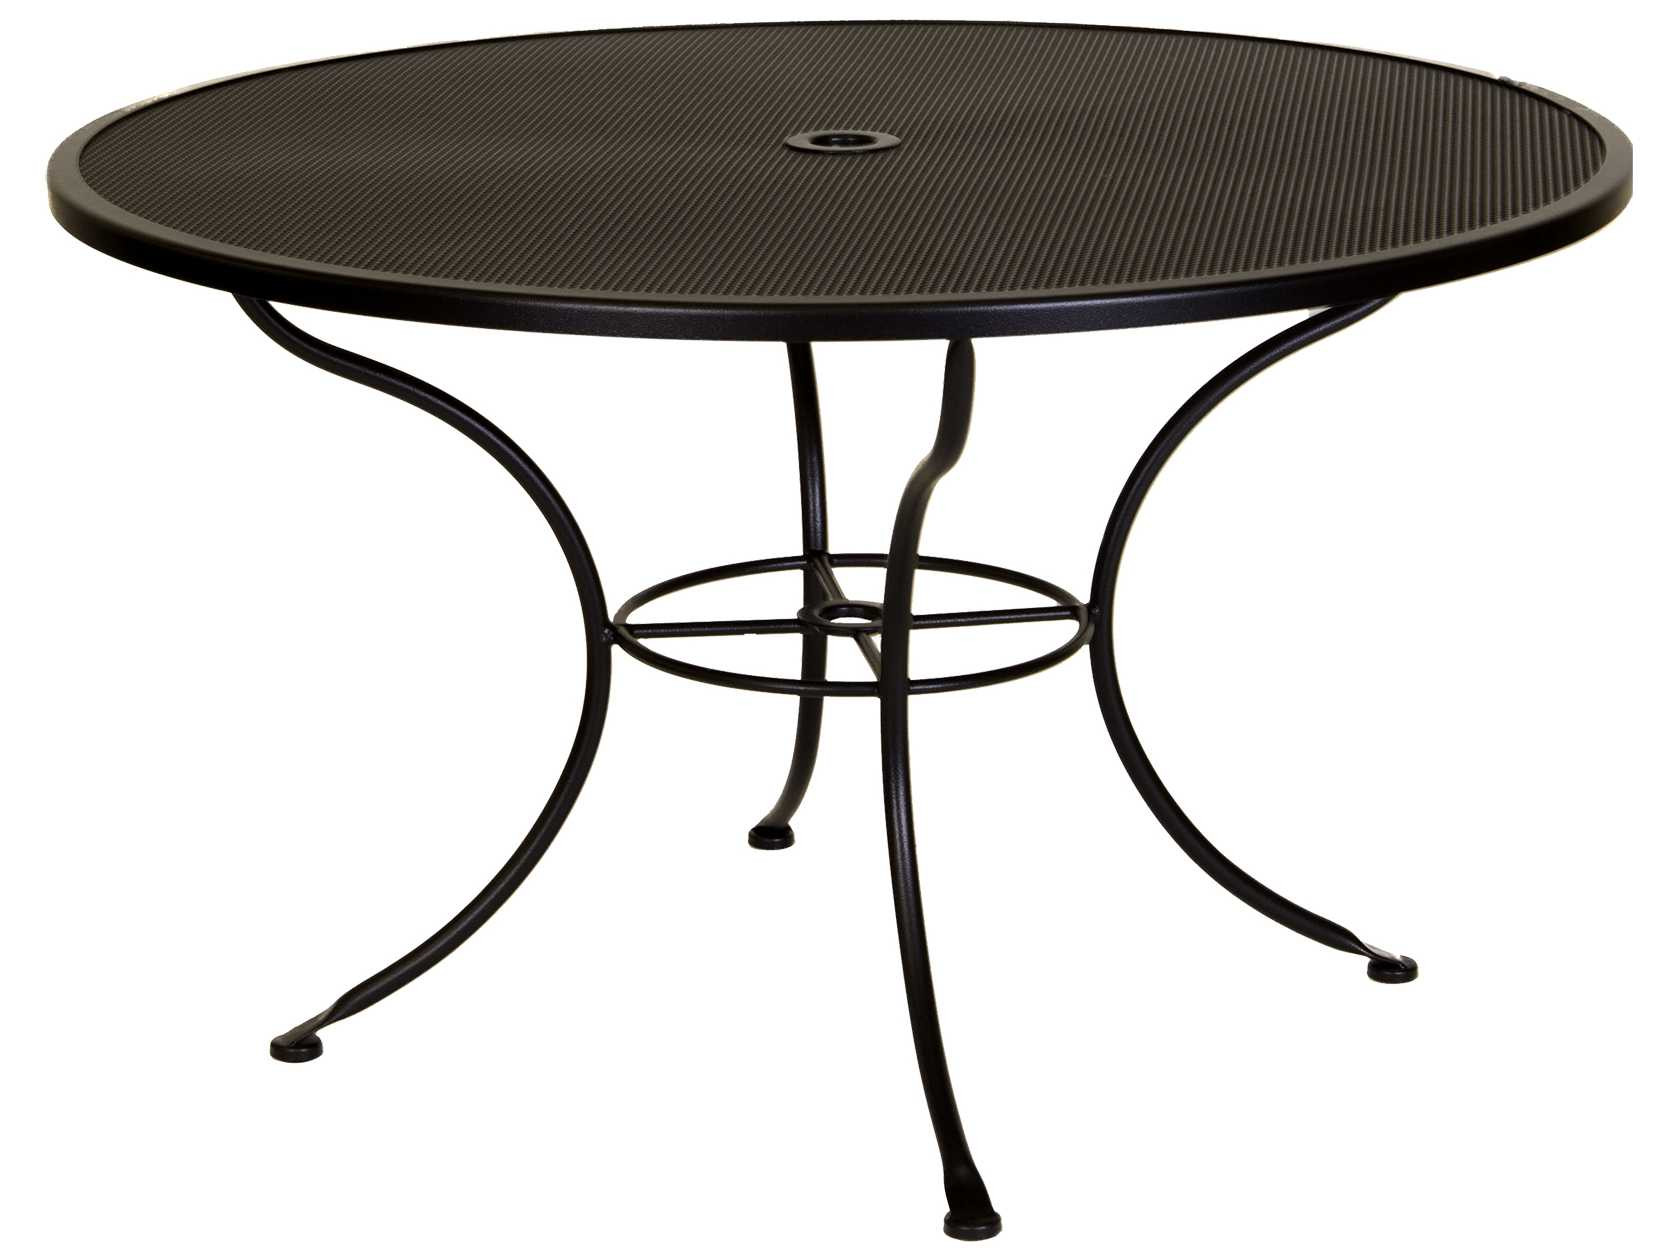 Best ideas about Round Patio Table . Save or Pin OW Lee Mesh Wrought Iron 48 Round Dining Table with Now.